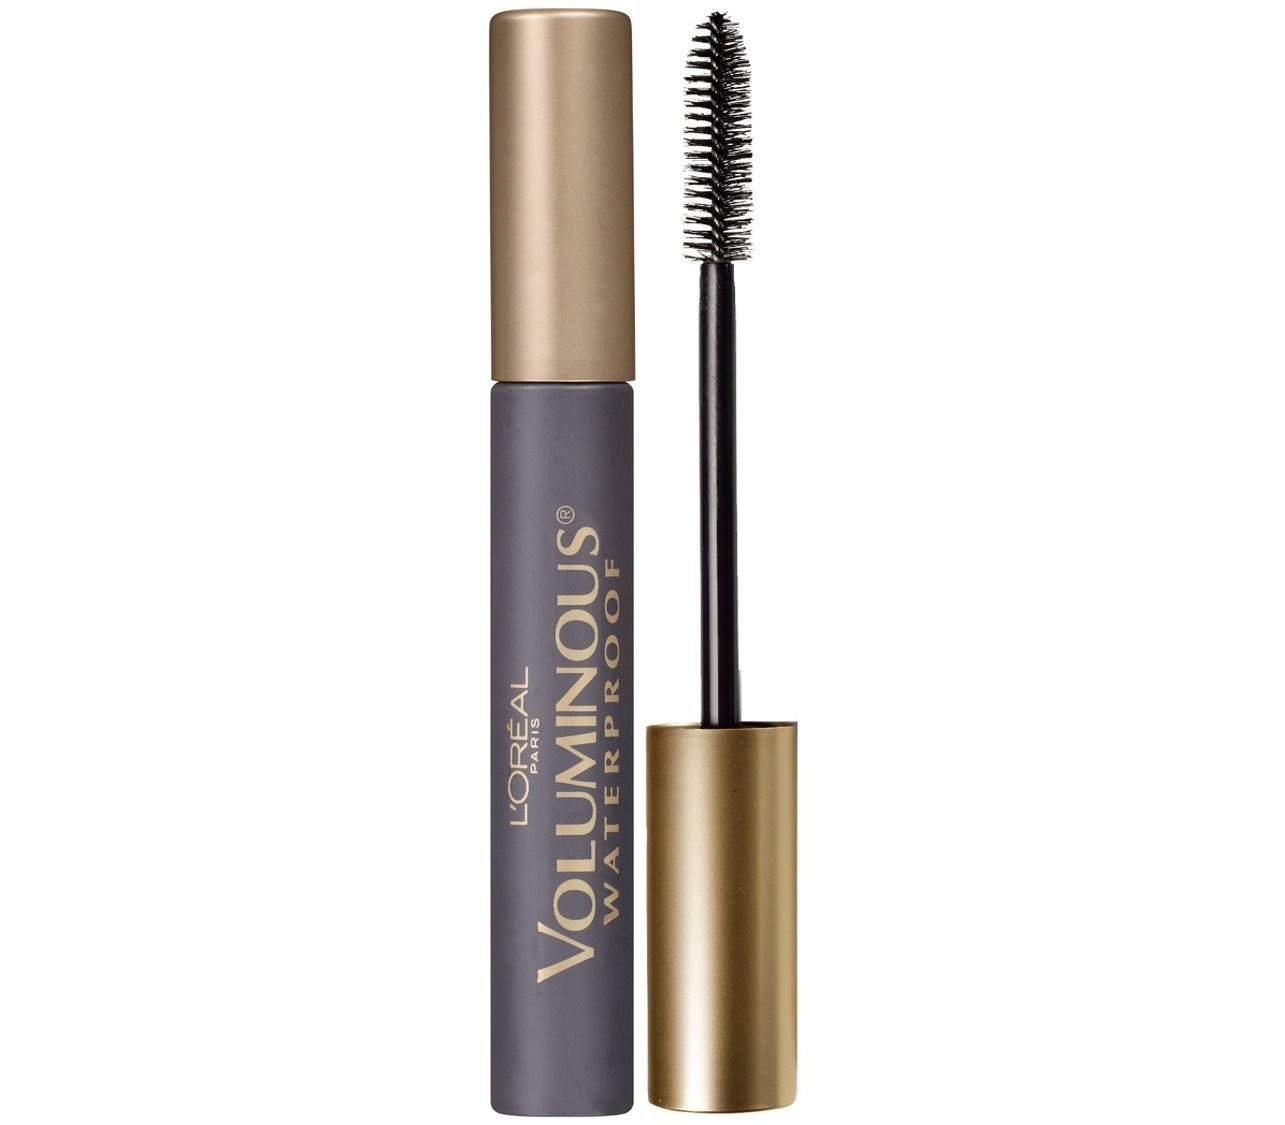 L'Oréal Paris Makeup Voluminous Original Waterproof Mascara, Black, 0.28 fl. oz.